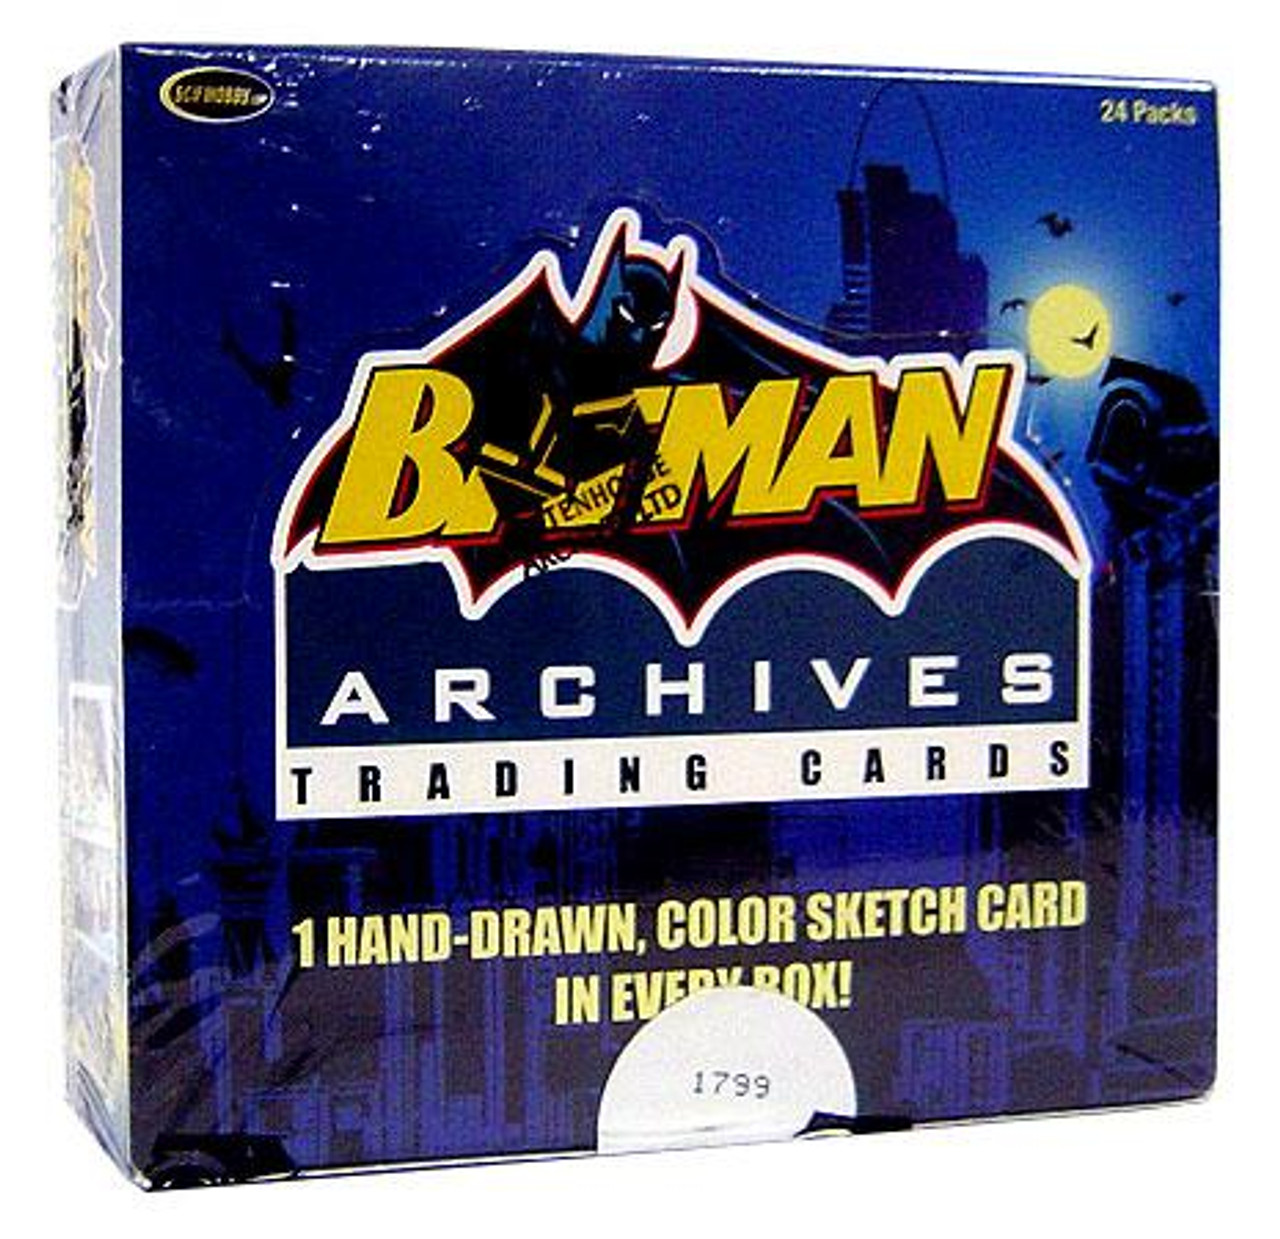 Batman Archives Trading Card Box